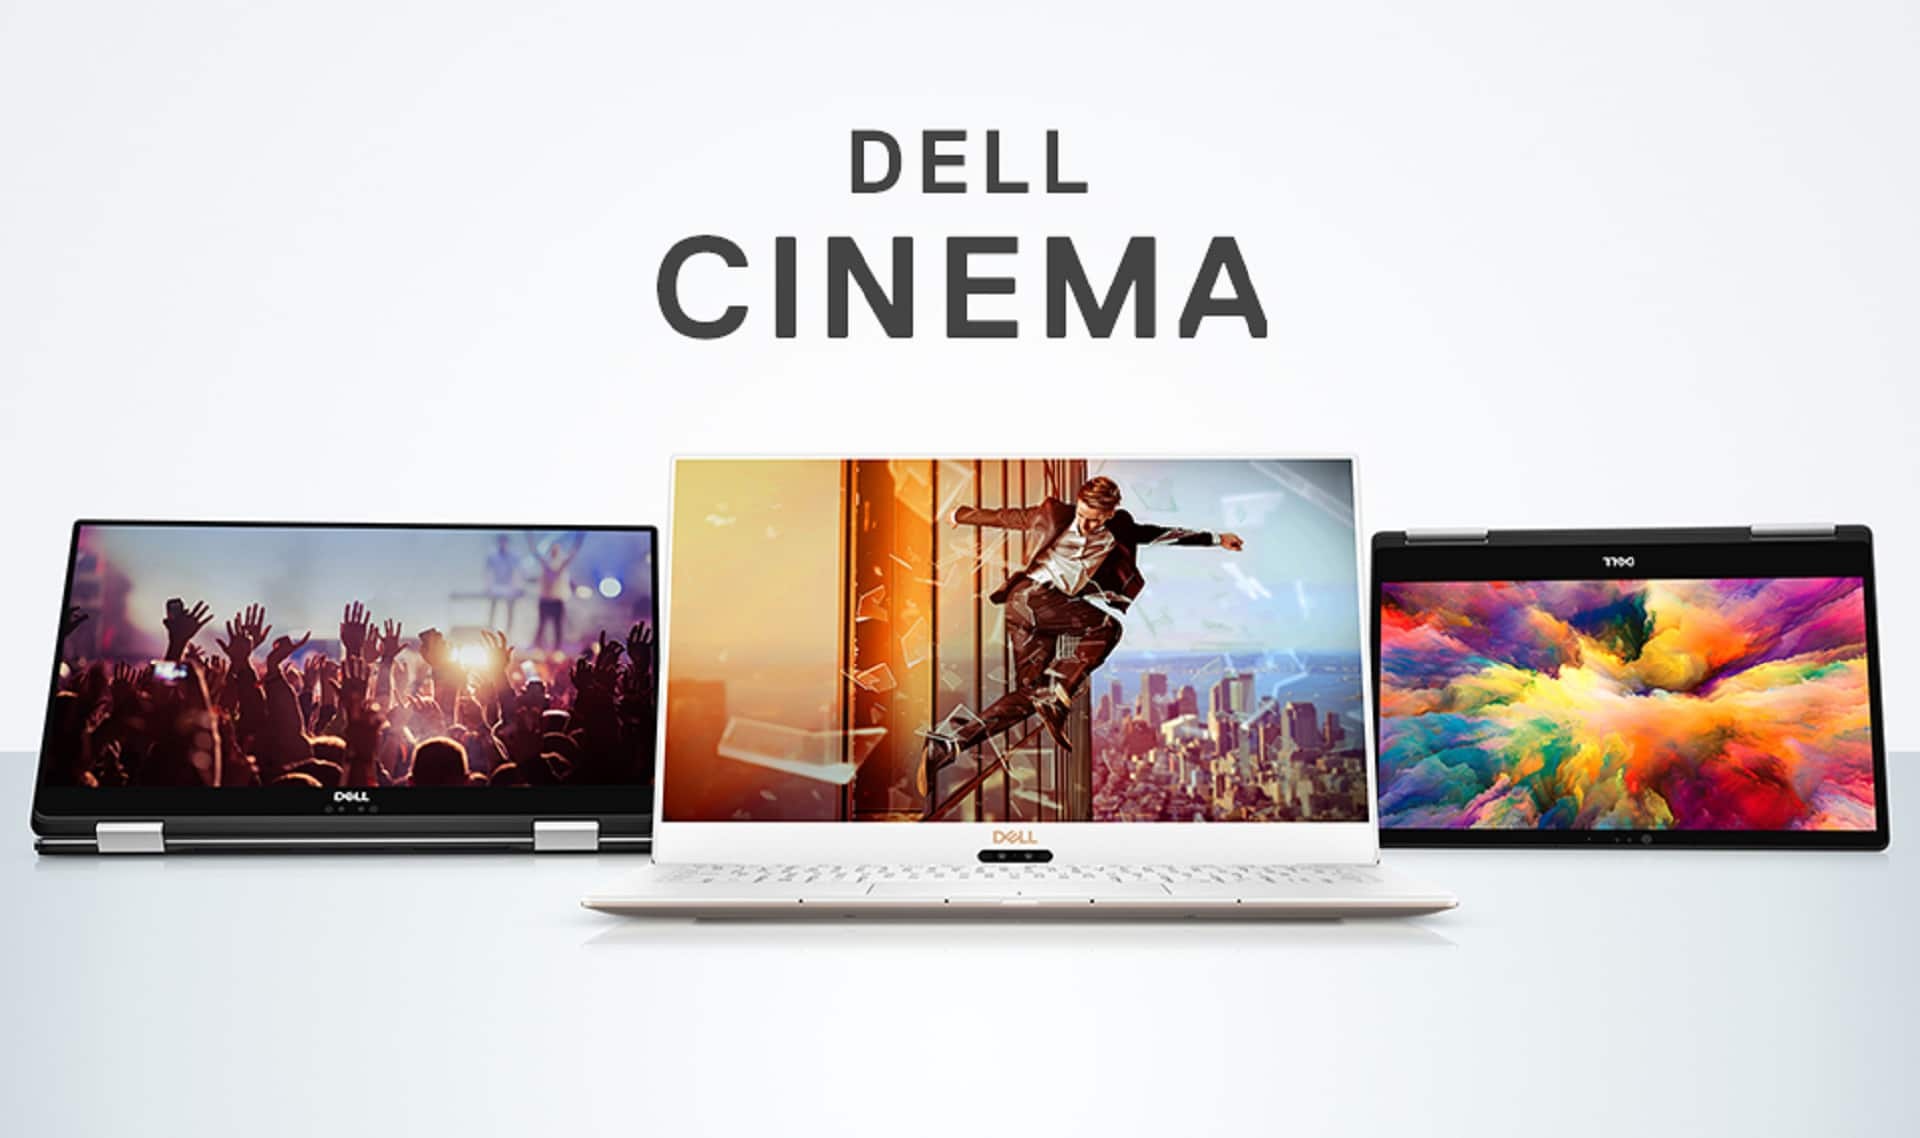 全新Dell Cinema 121